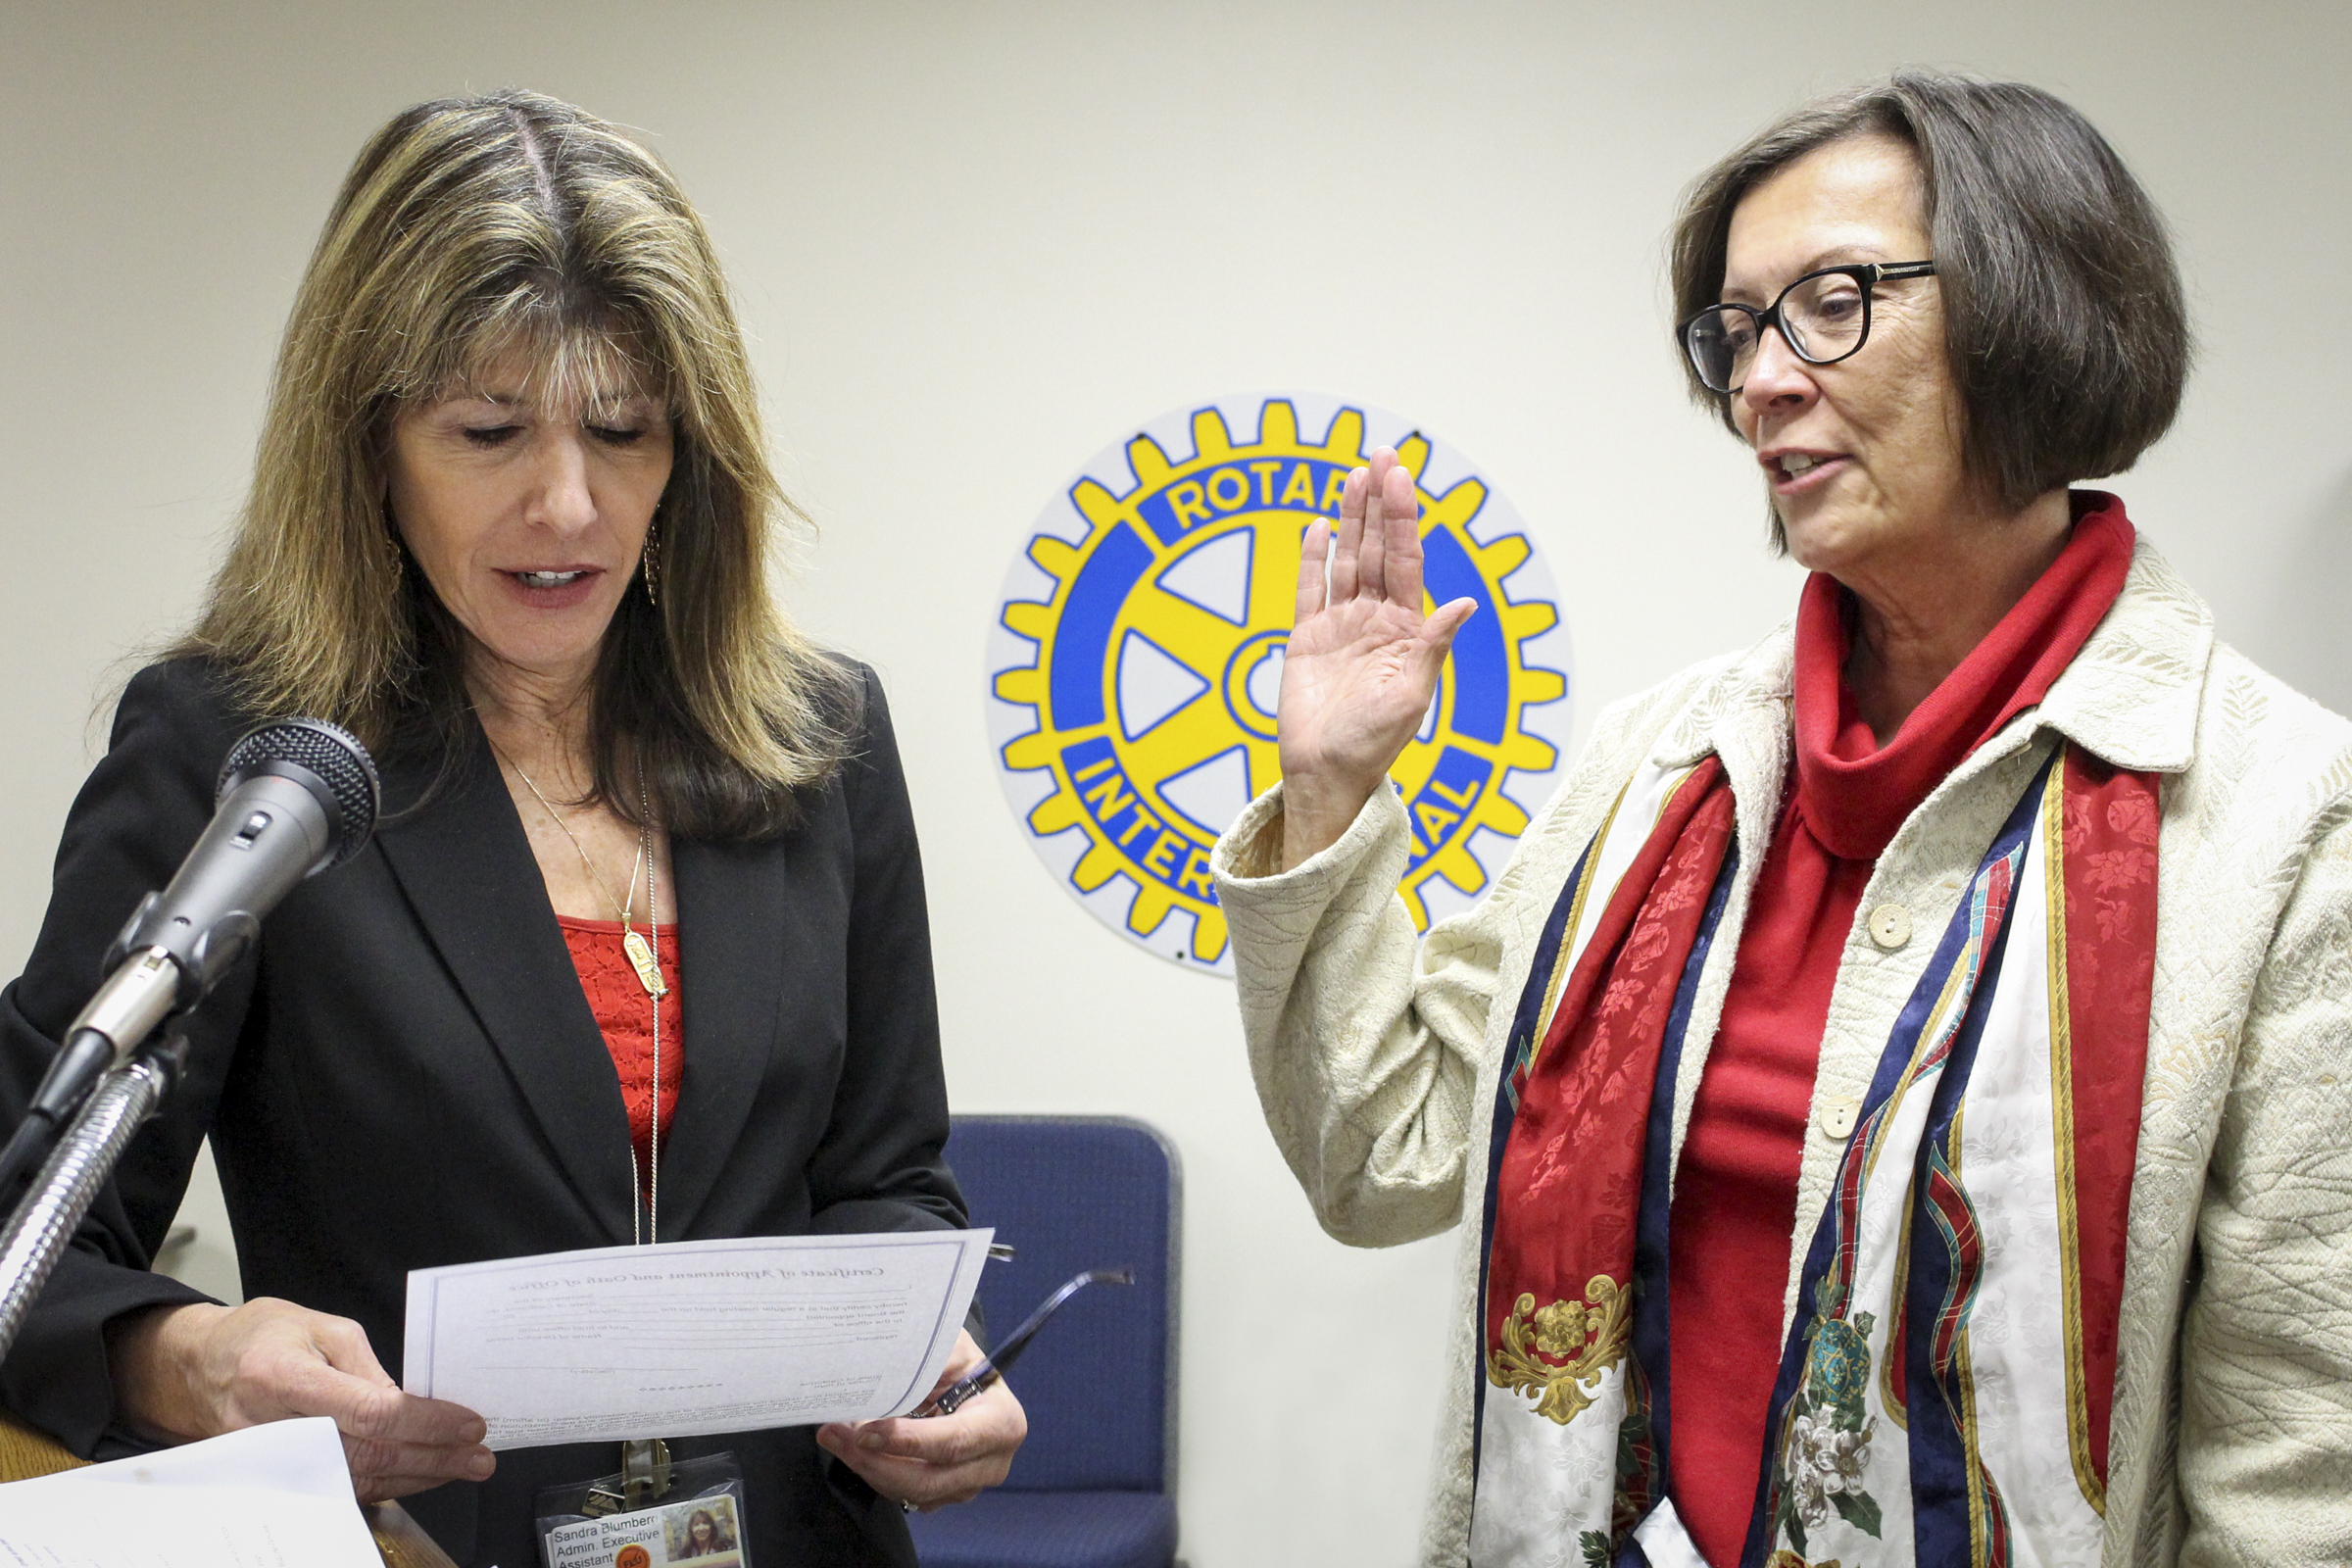 Jean Turner, right, NIHD's newest member to its Board of Directors, is sworn into office Wednesday evening by NIHD Board Secretary Sandy Blumberg. Photo by Barbara Laughon/Northern Inyo Healthcare District